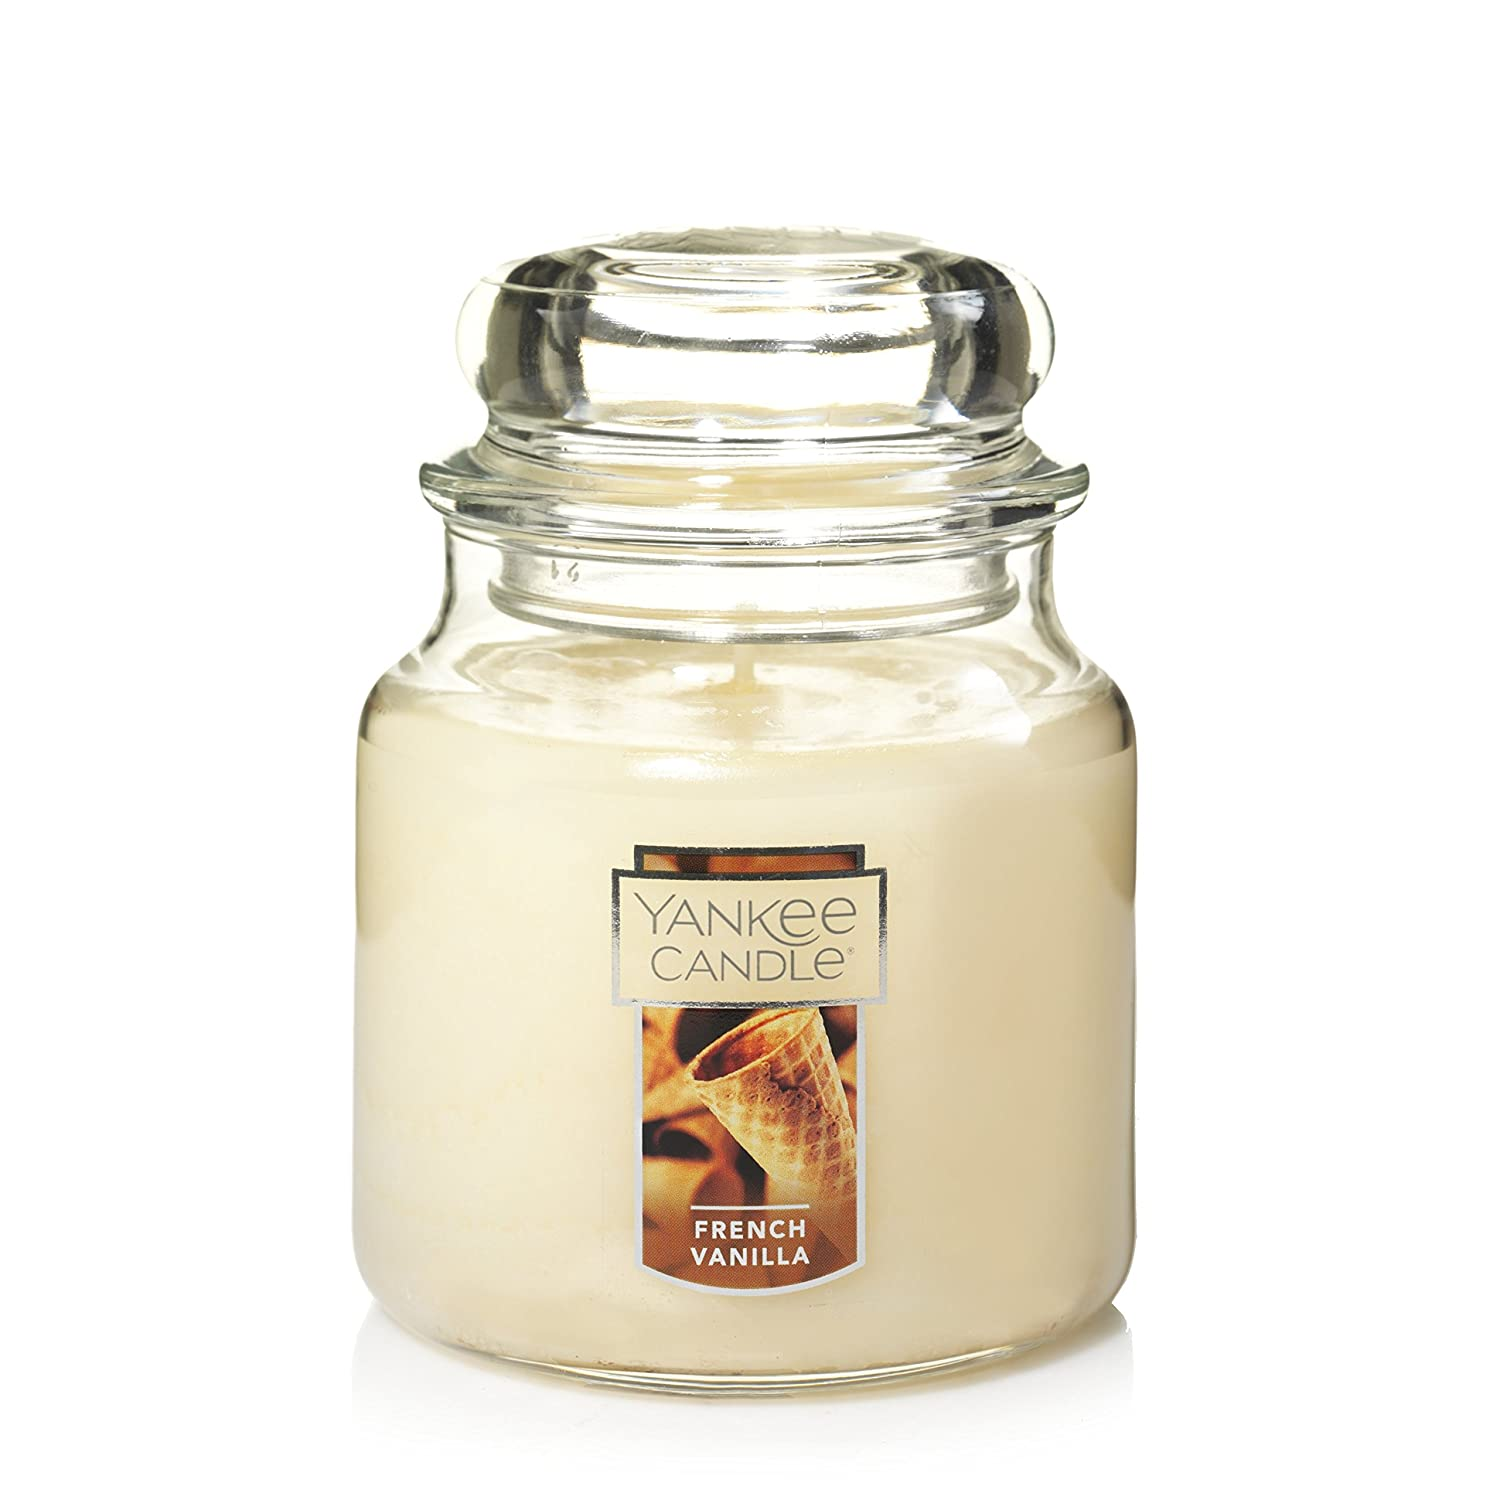 Yankee Candle Medium 2-Wick Tumbler Candle, French Vanilla Yankee Candle Company 1125718Z